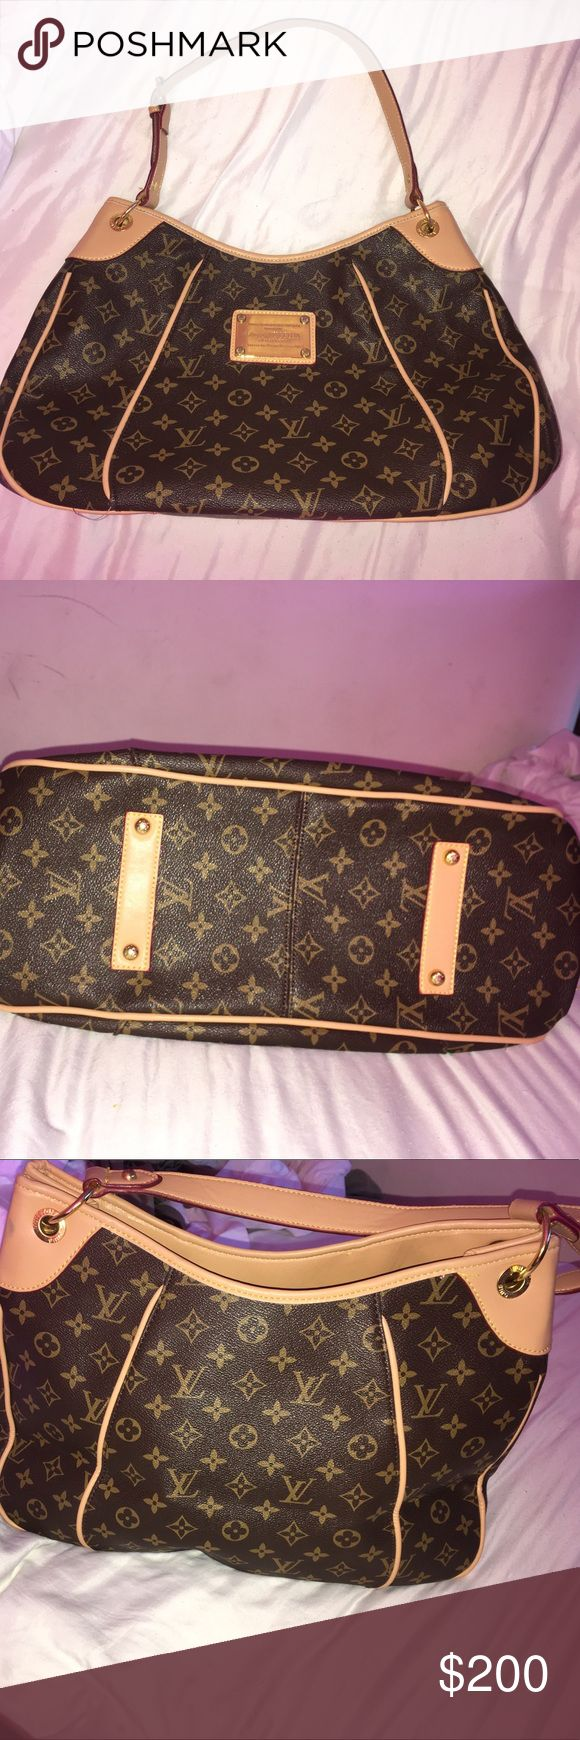 Louis Vuitton purse New, never used Louis Vuitton purse. It was a gift, I cannot prove authenticity hence the price. Love this purse but unfortunately I need the money more. No trades ❌ price is negotiable☺️ use the make an offer button. I only communicate and sell through poshmark. Louis Vuitton Bags Shoulder Bags